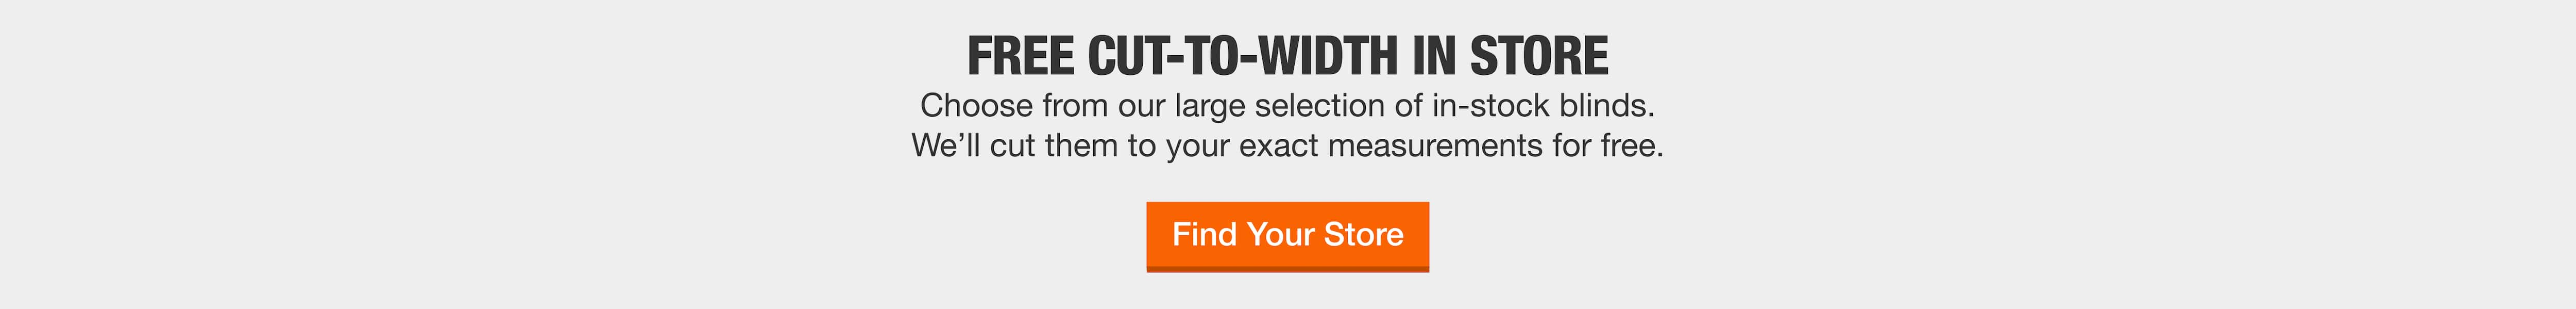 FREE CUT-TO-WIDTH IN STOREChoose from our large selection of in-stock blinds.  We'll cut them to your exact measurements for free. Find your store now.